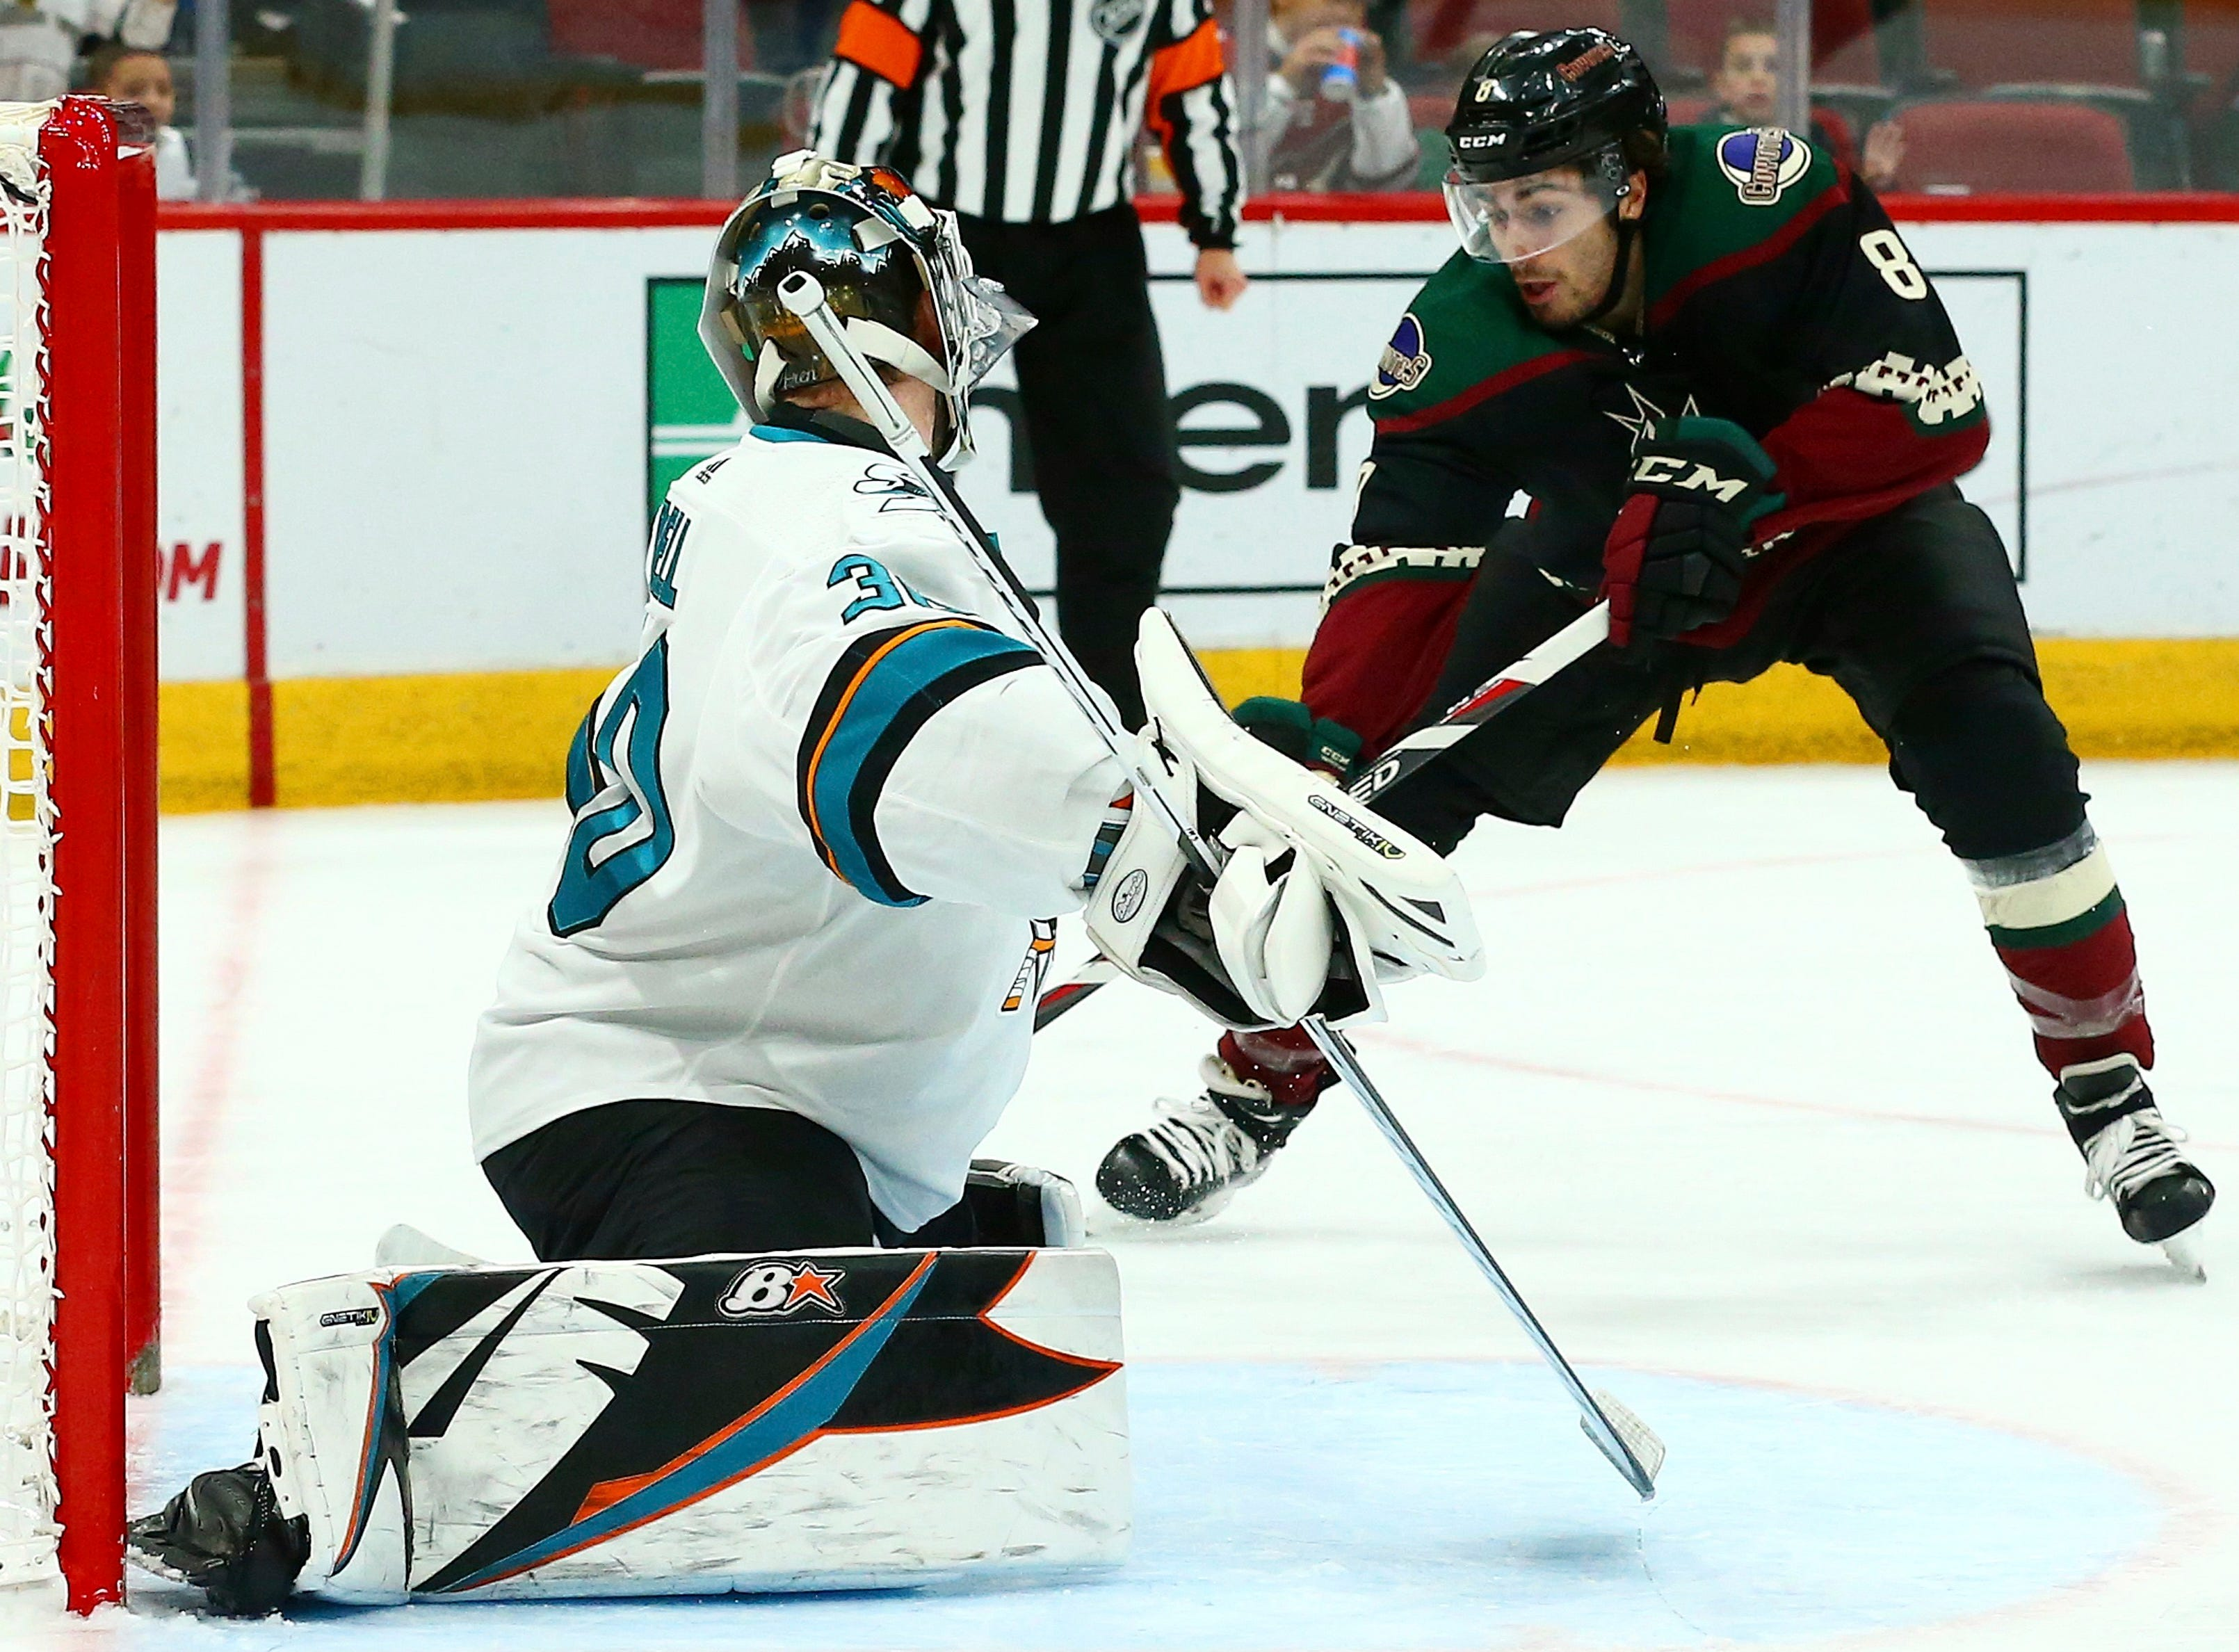 Arizona Coyotes center Nick Schmaltz (8) scores a goal against San Jose Sharks goaltender Aaron Dell, left, during the second period of an NHL hockey game, Saturday, Dec. 8, 2018, in Phoenix. (AP Photo/Ross D. Franklin)